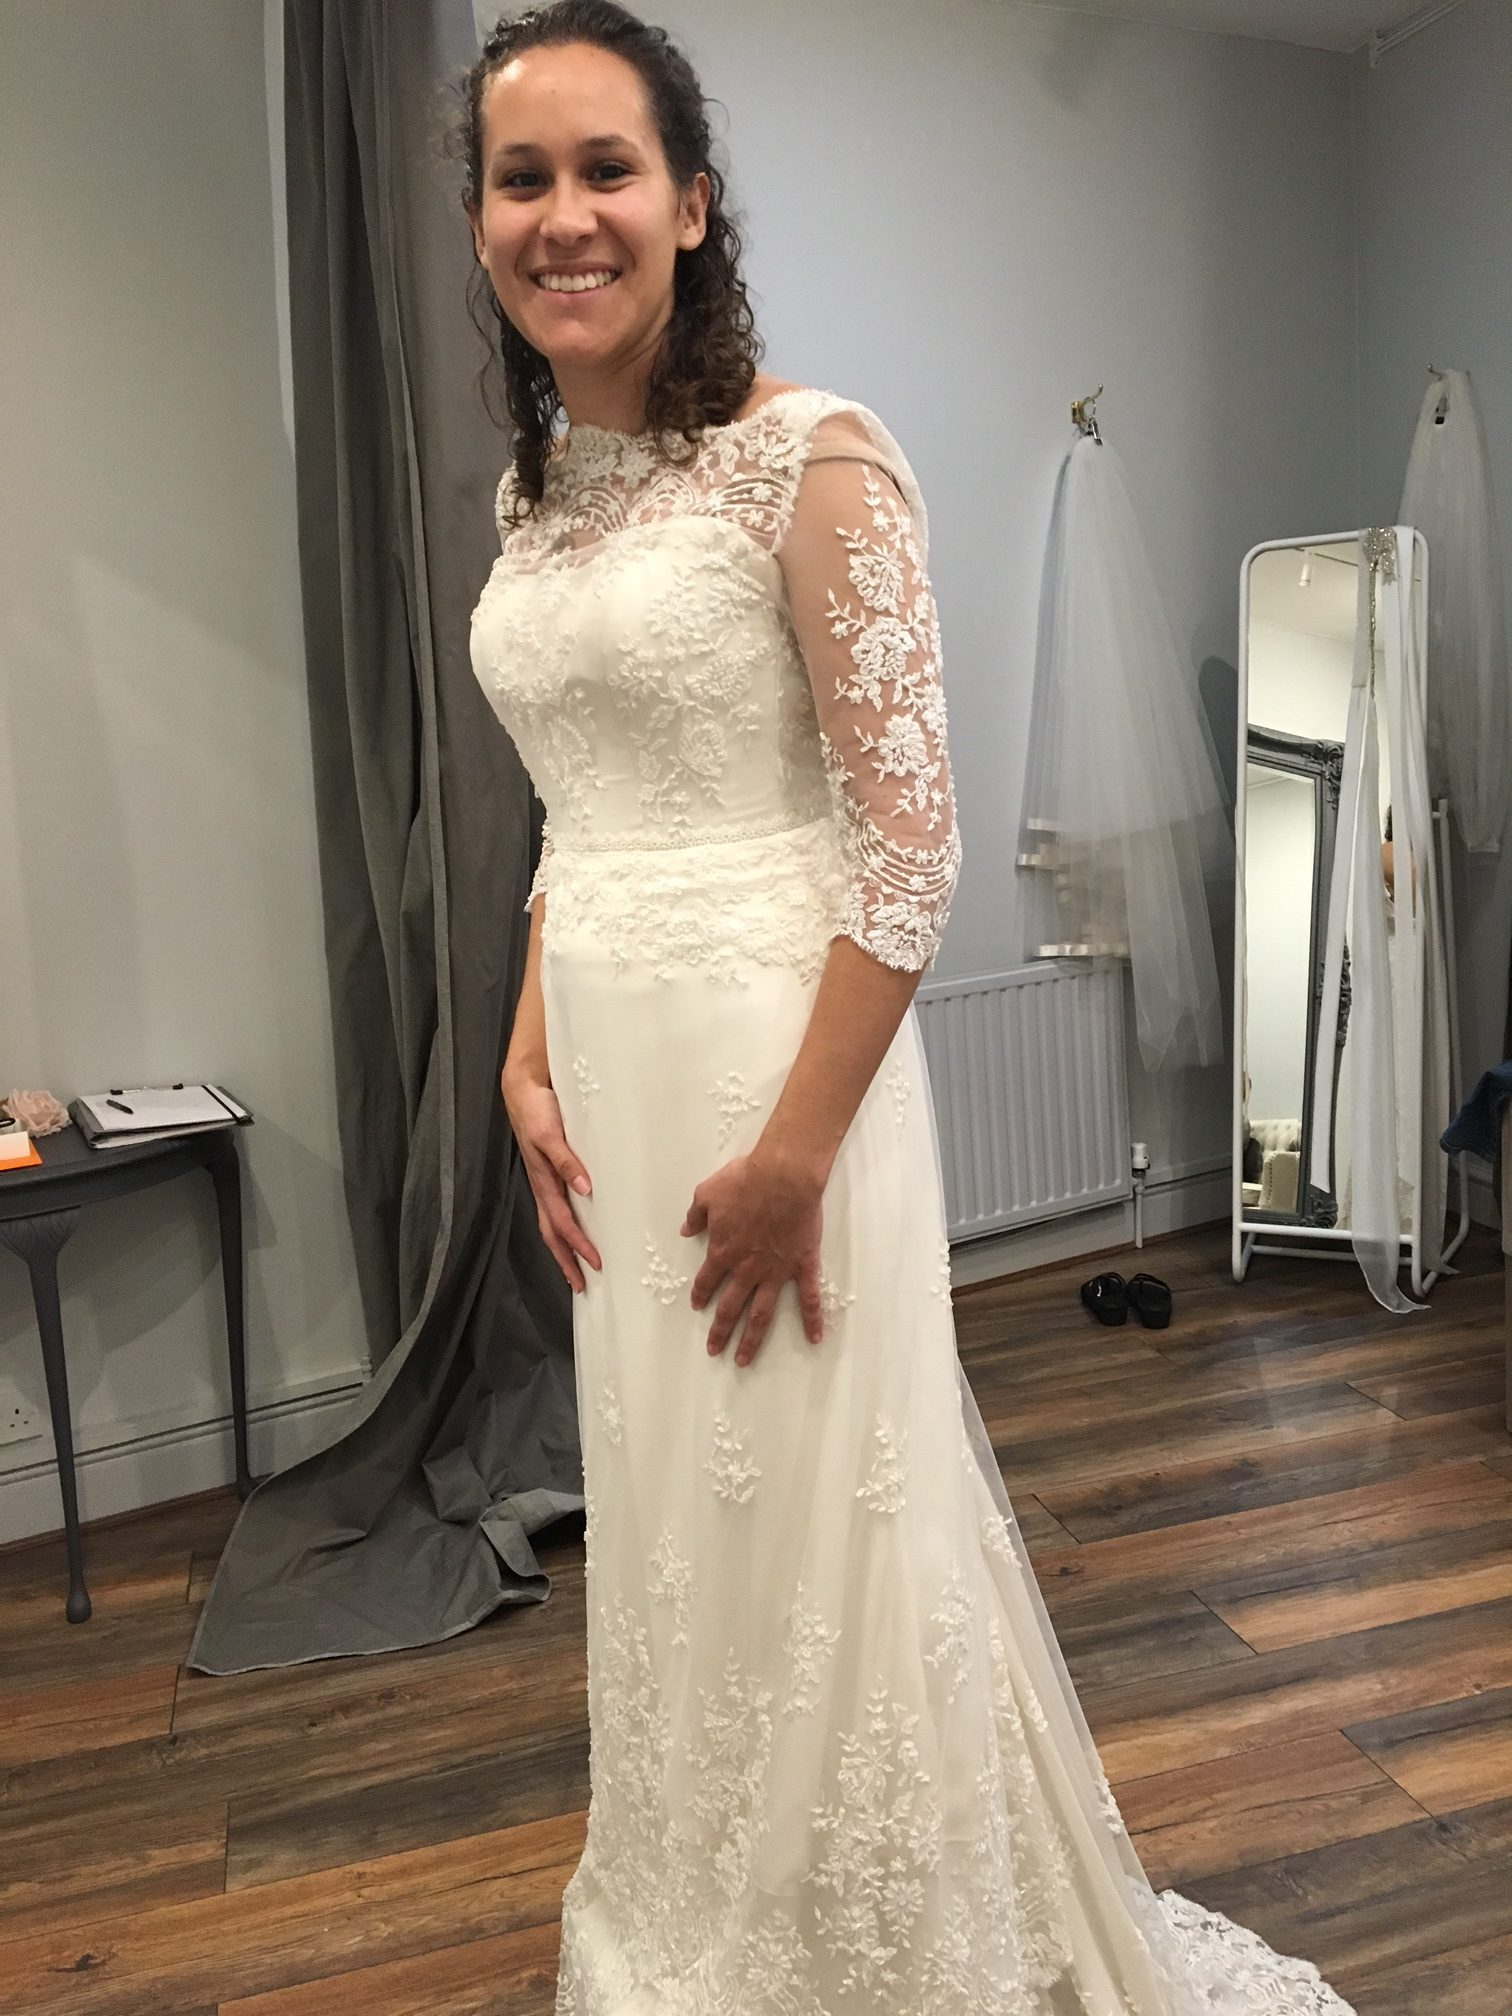 Wedding dress shopping advice from a bride who's been there wedding dress shopping advice Wedding Dress Shopping Advice IMG 6108 e1479344091617